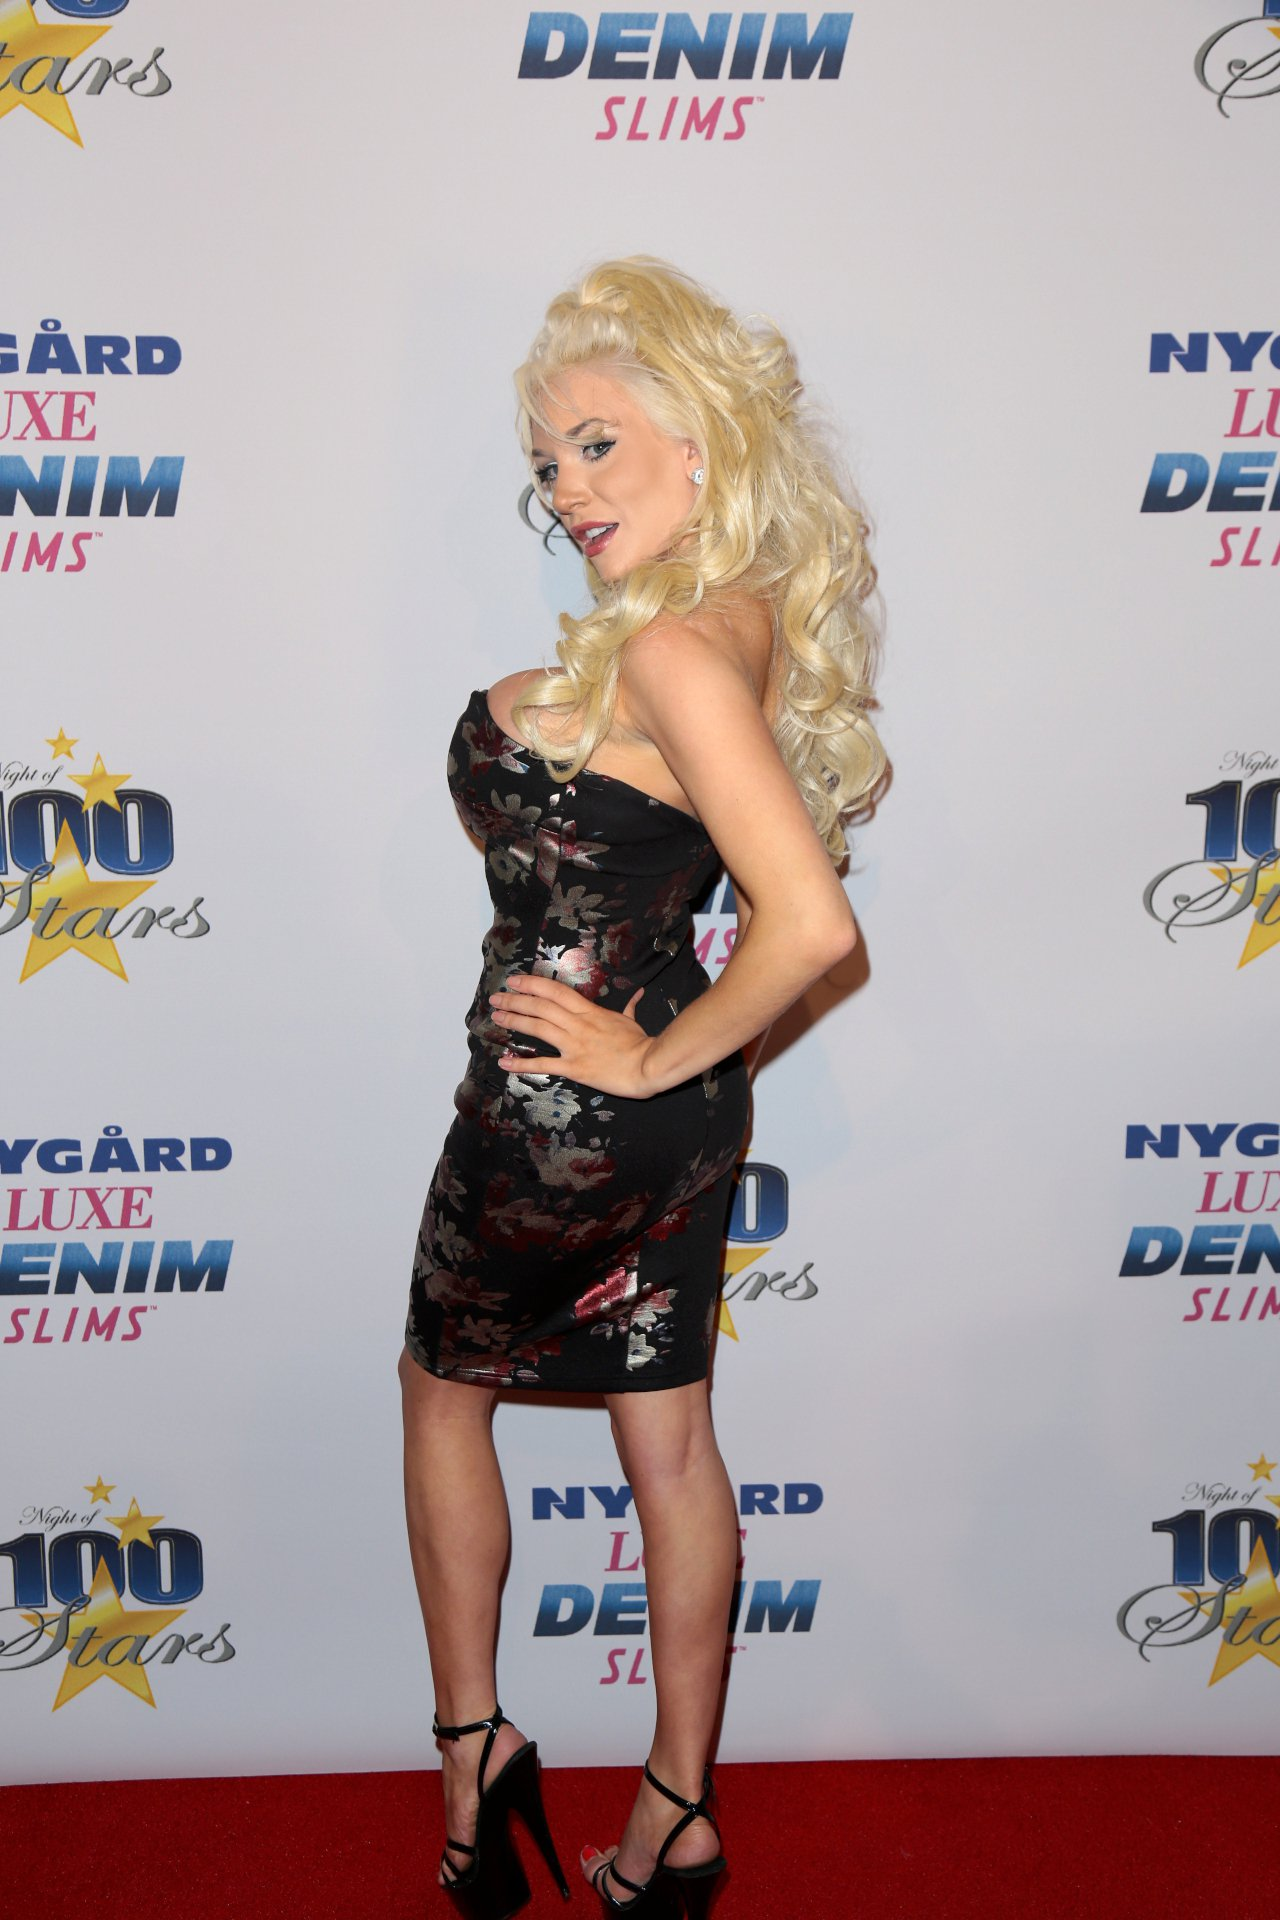 Courtney Stodden Picture 47 - 27th Annual Night of 100